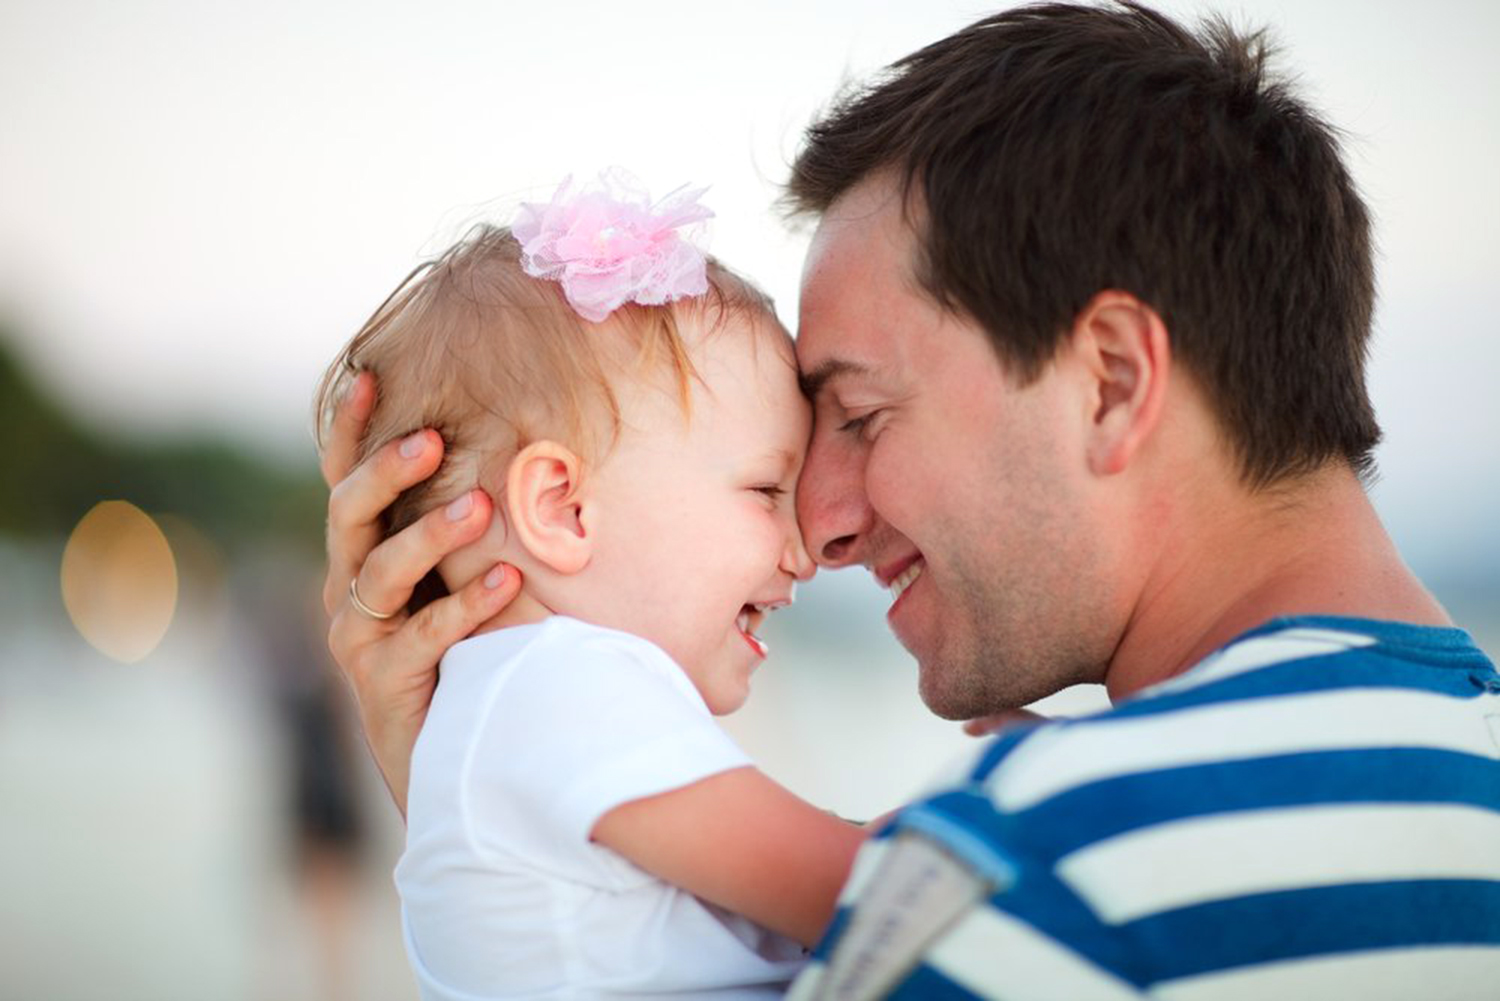 Dad's habits may affect health of future offspring